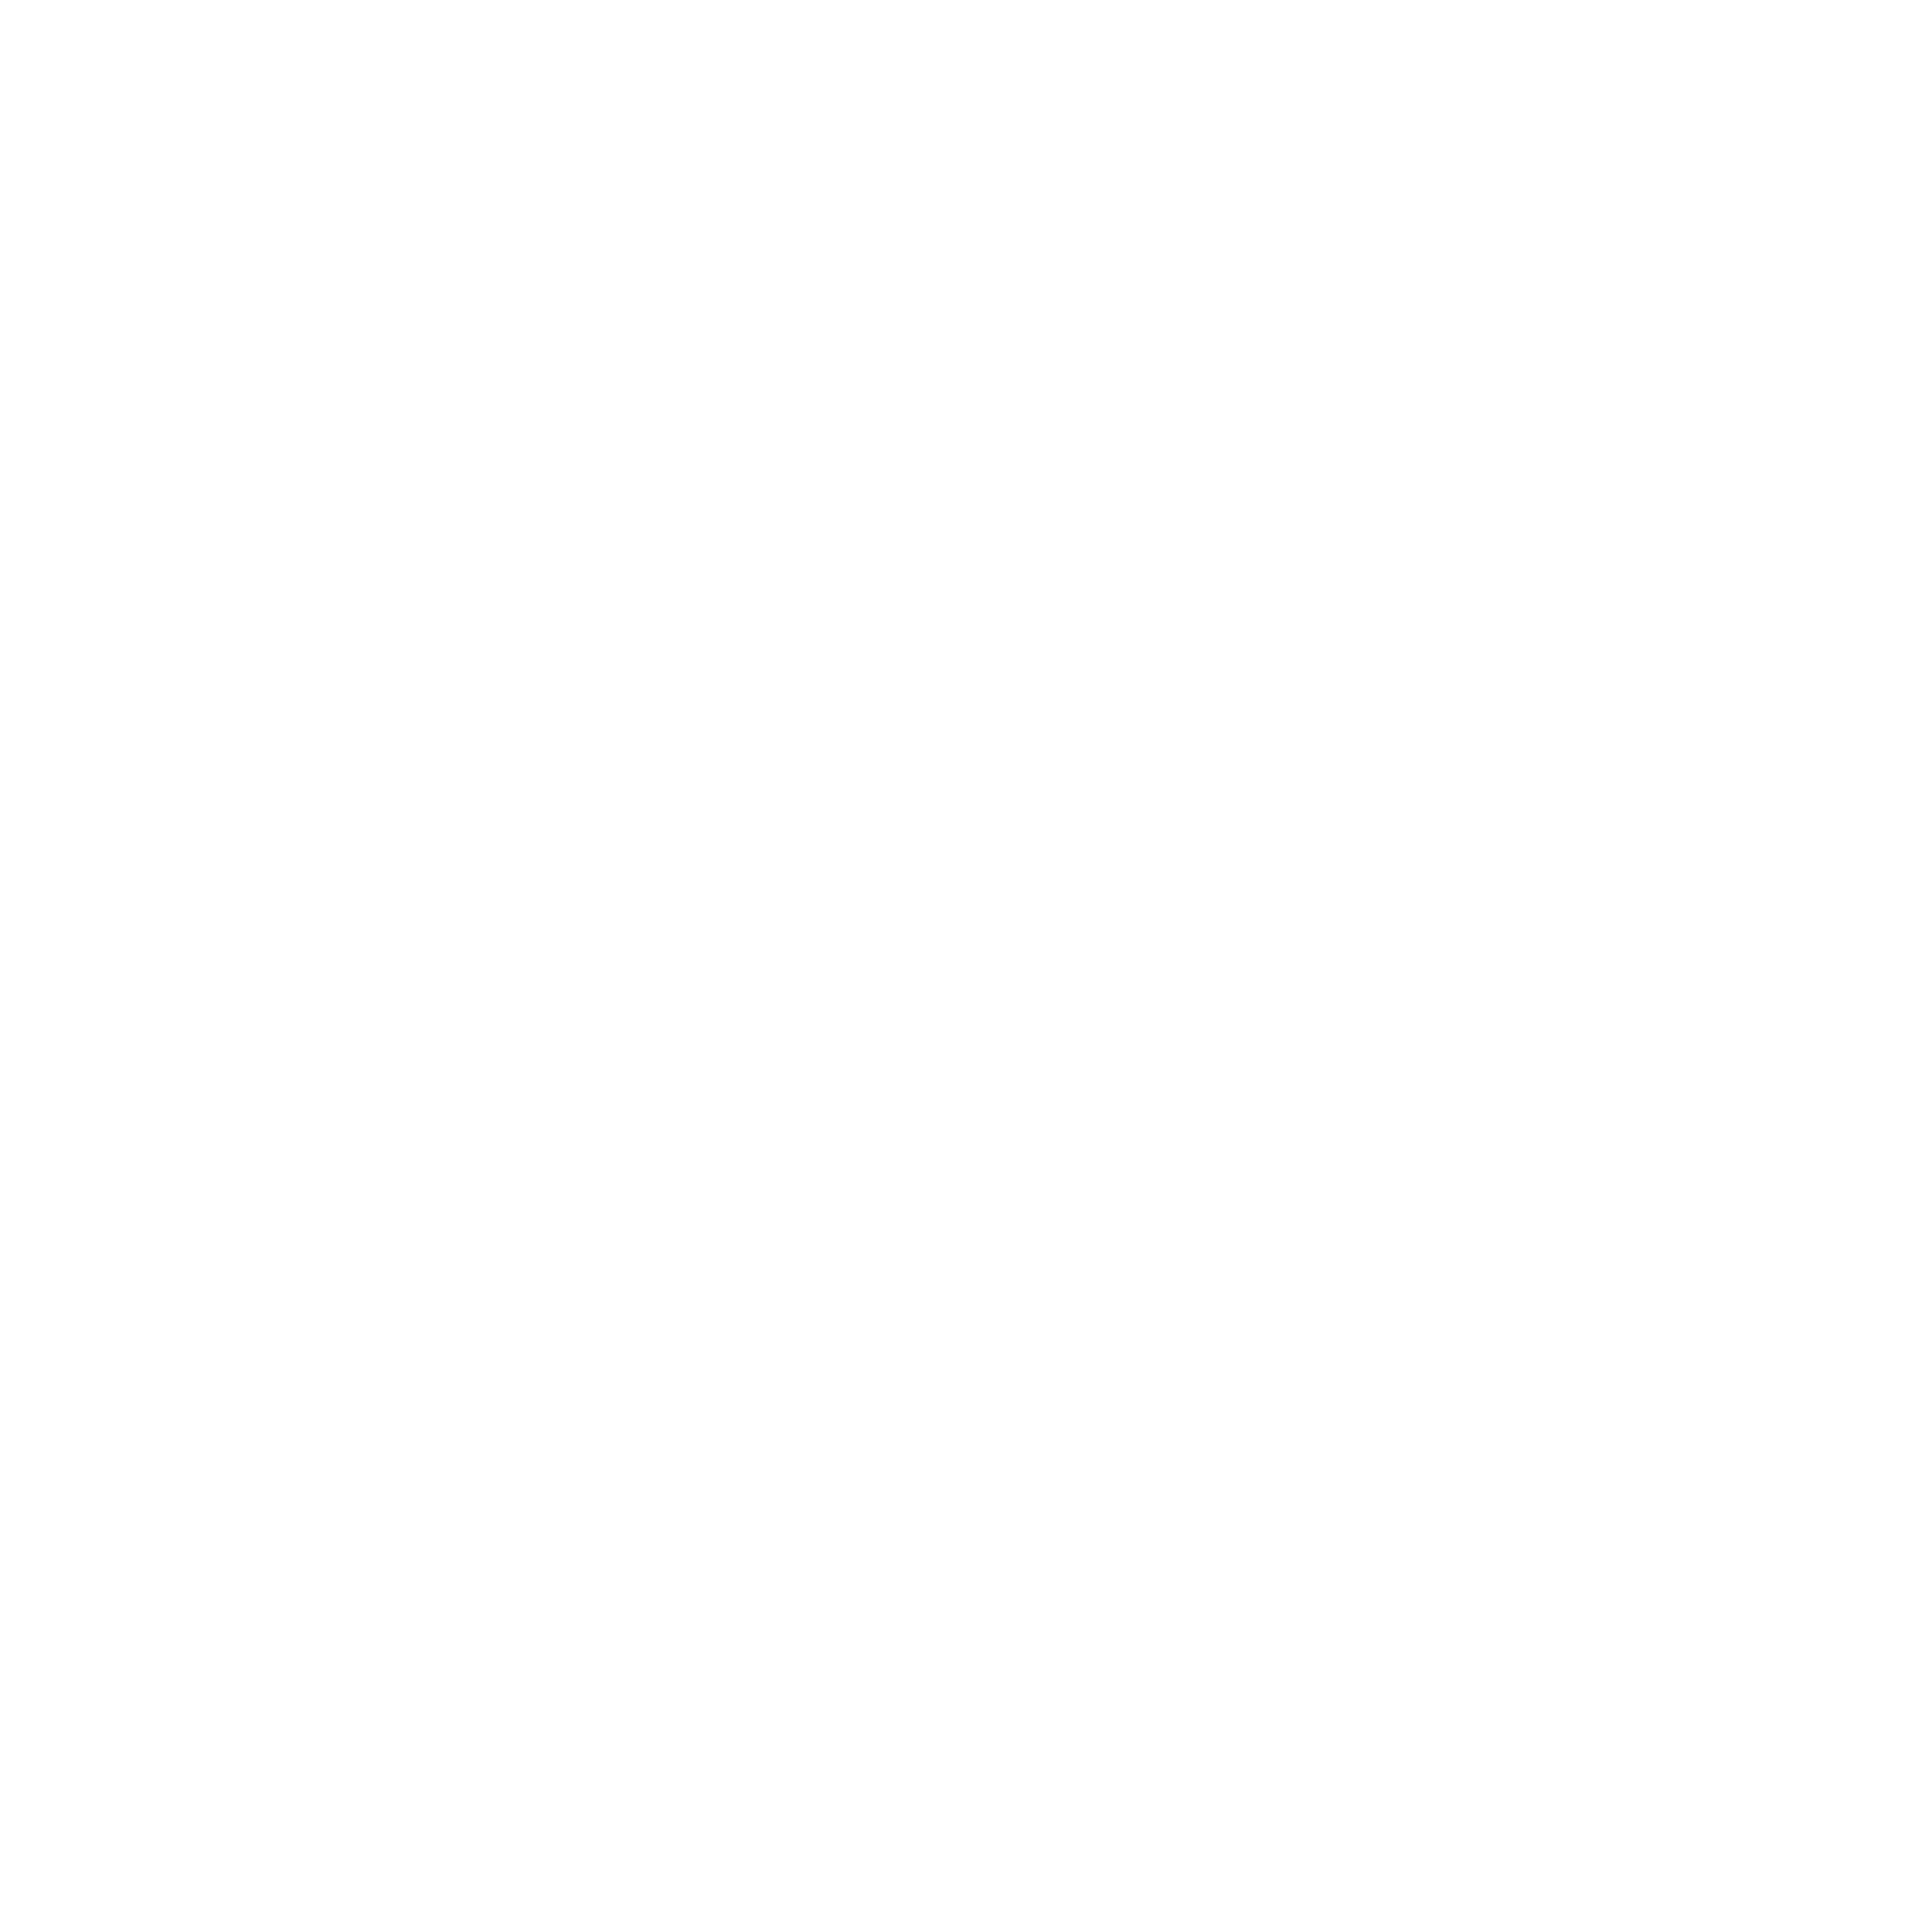 Residential_Insignia.png